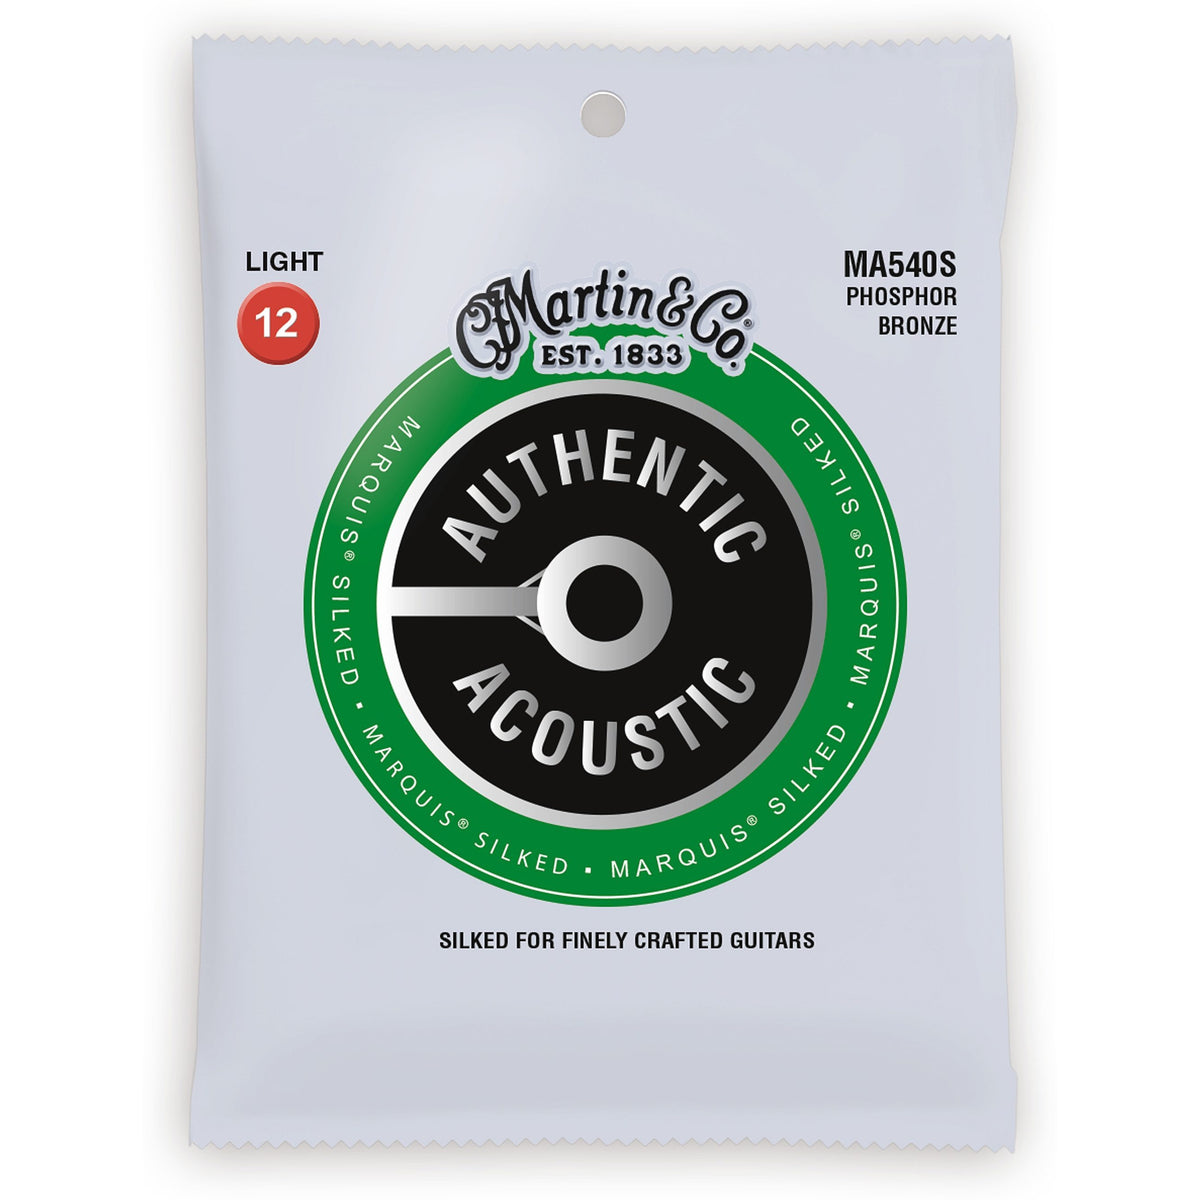 Martin Authentic Marquis Silked Phosphor Bronze Acoustic Guitar Strings, MA540S, Light